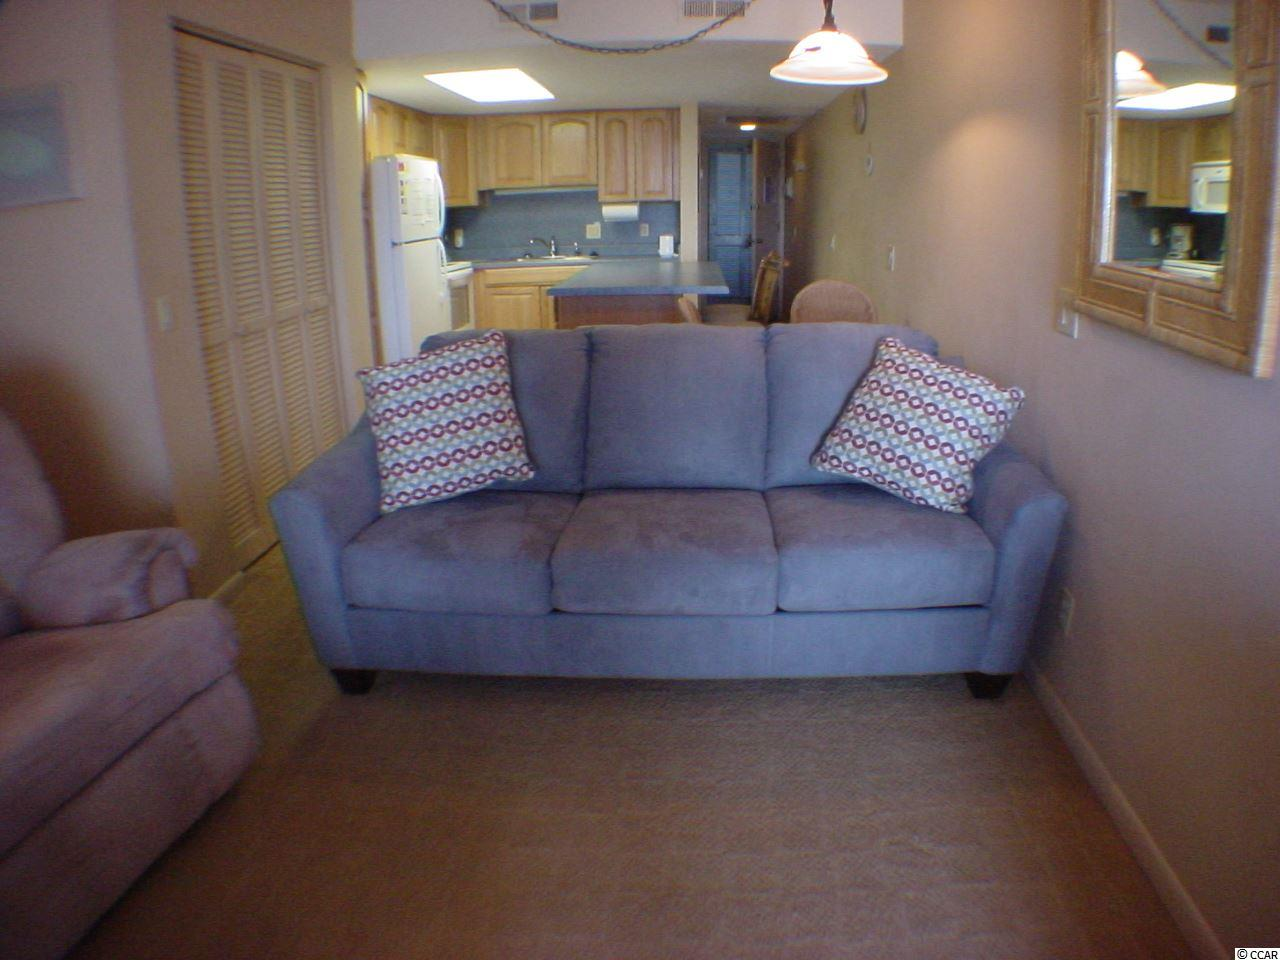 NAUTICAL WATCH condo at 4515 S OCEAN BLVD for sale. 1704829